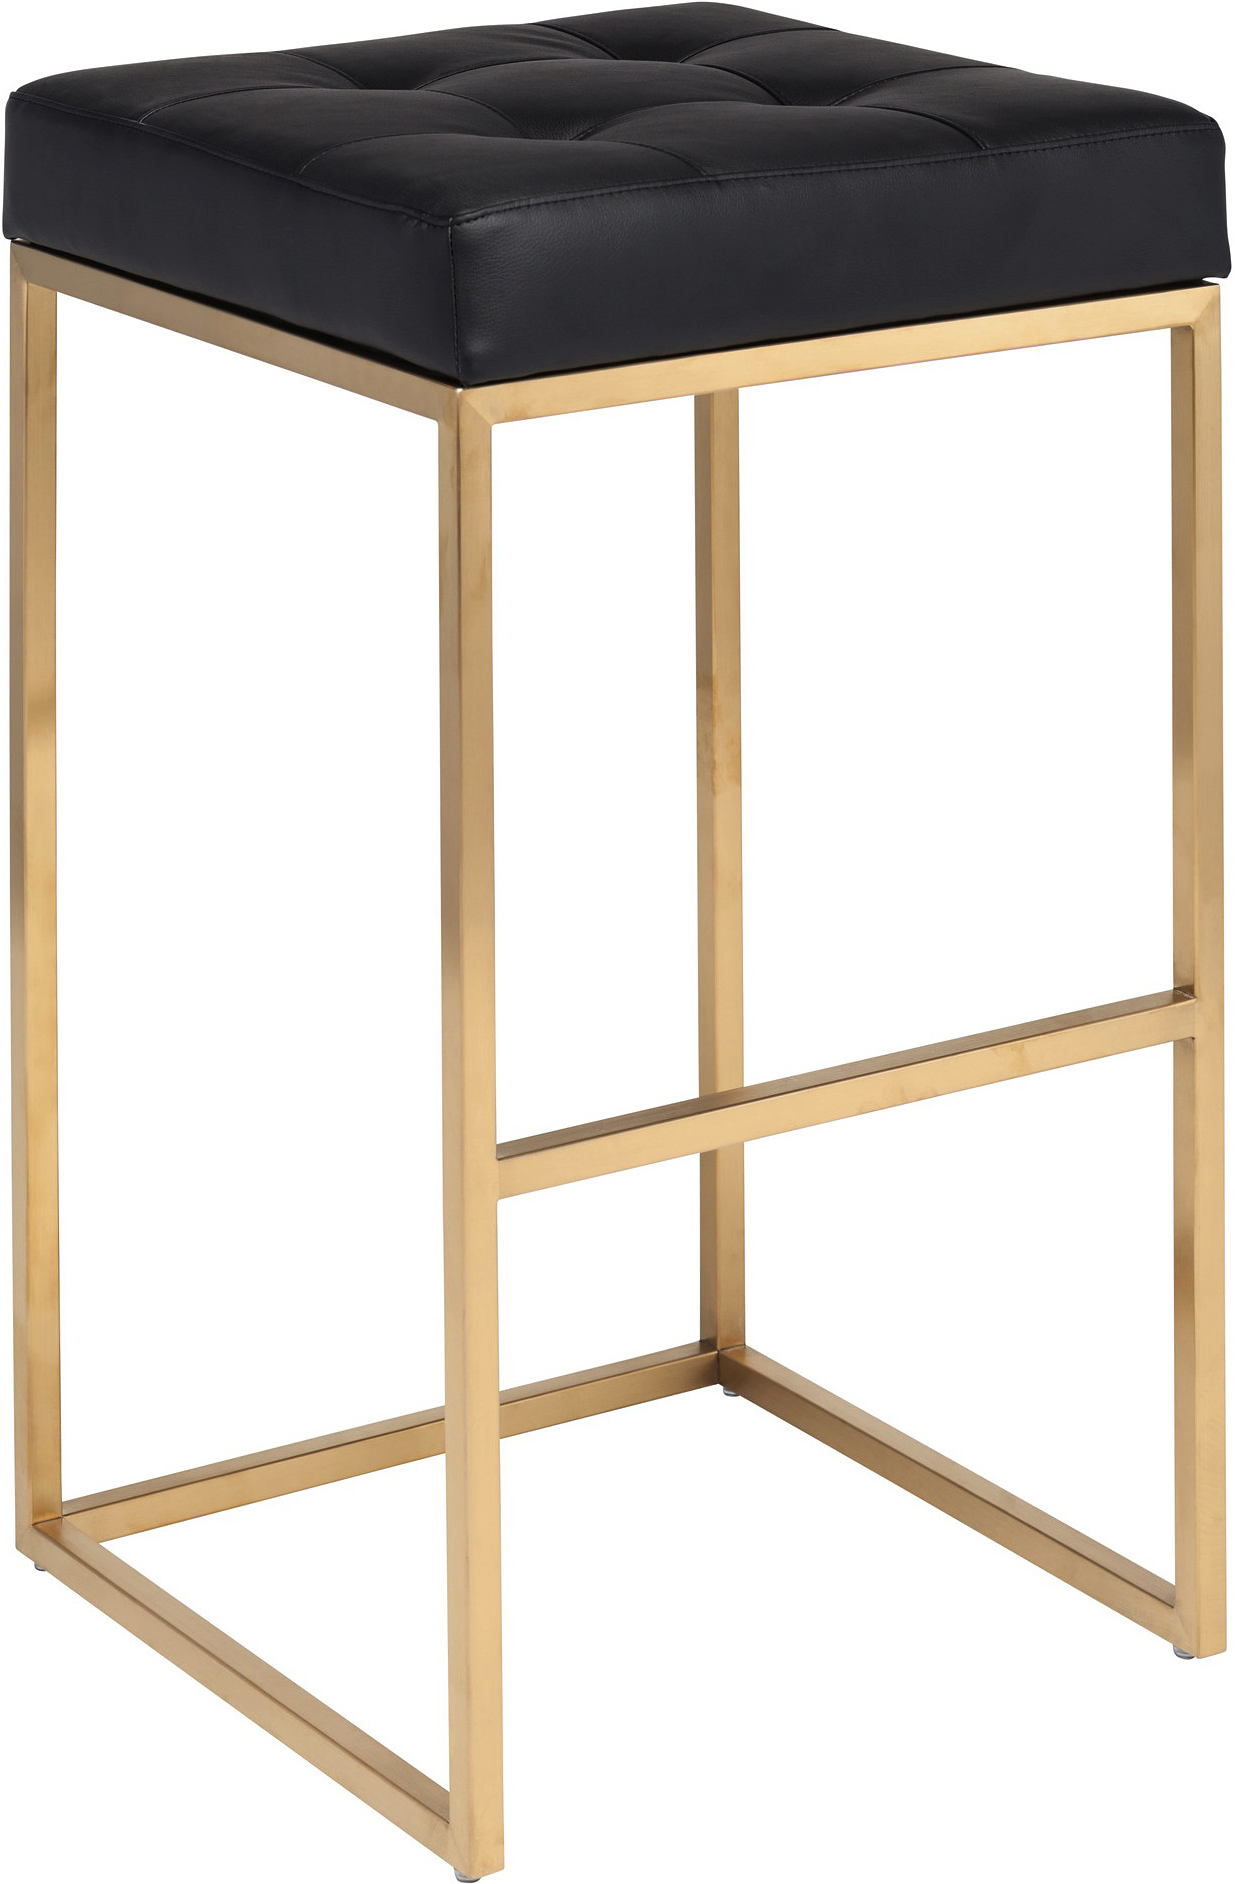 Chi Stool By Nuevo Living Is Available In Bar And Counter Height And Can Be Purchased At AdvancedInteriorDesigns.com. This stool comes with a brushed gold frame and with naugahyde leather either in black or white.